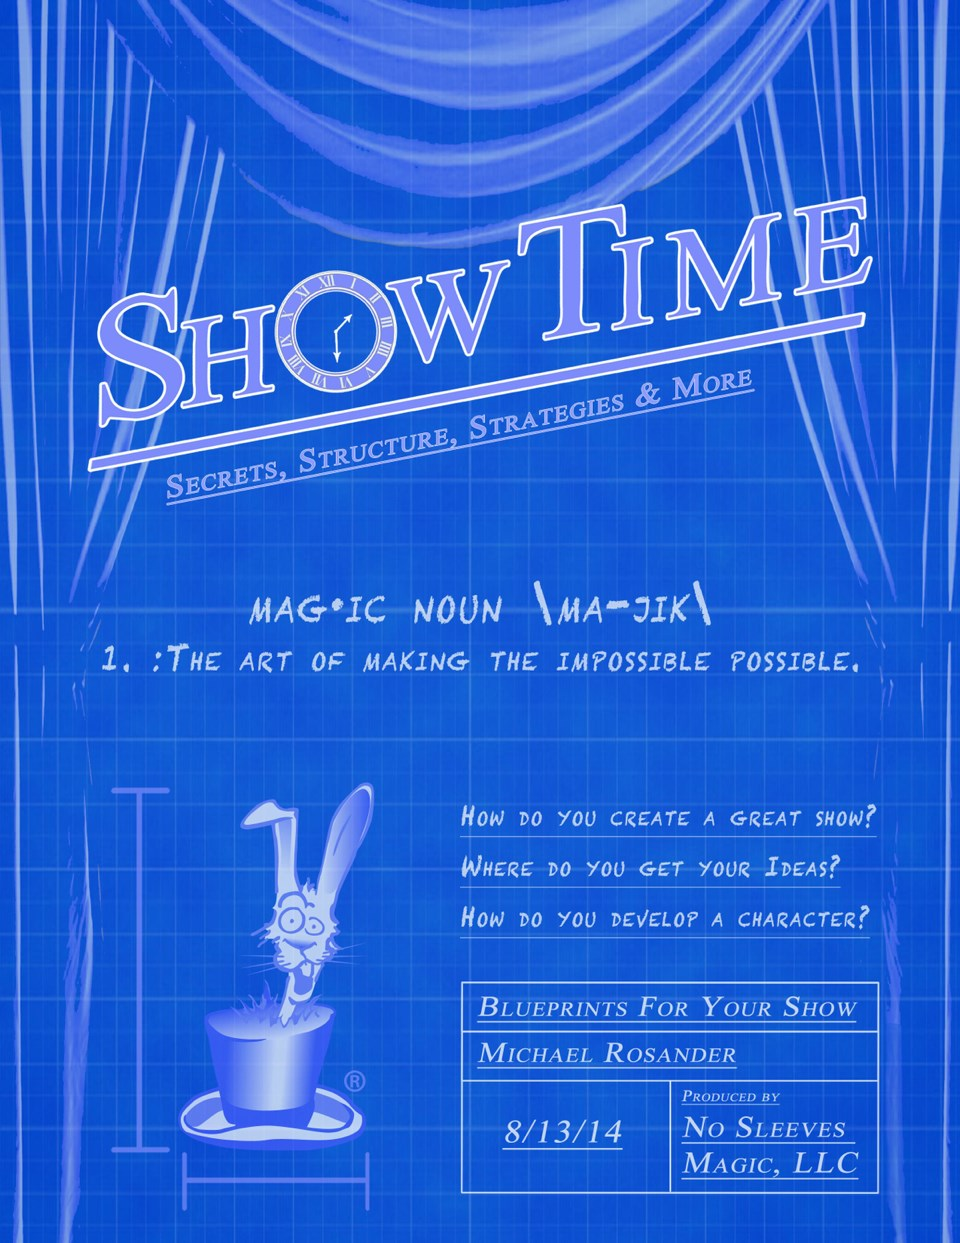 Show-Time: Secrets, Structure, Strategies & More - magic